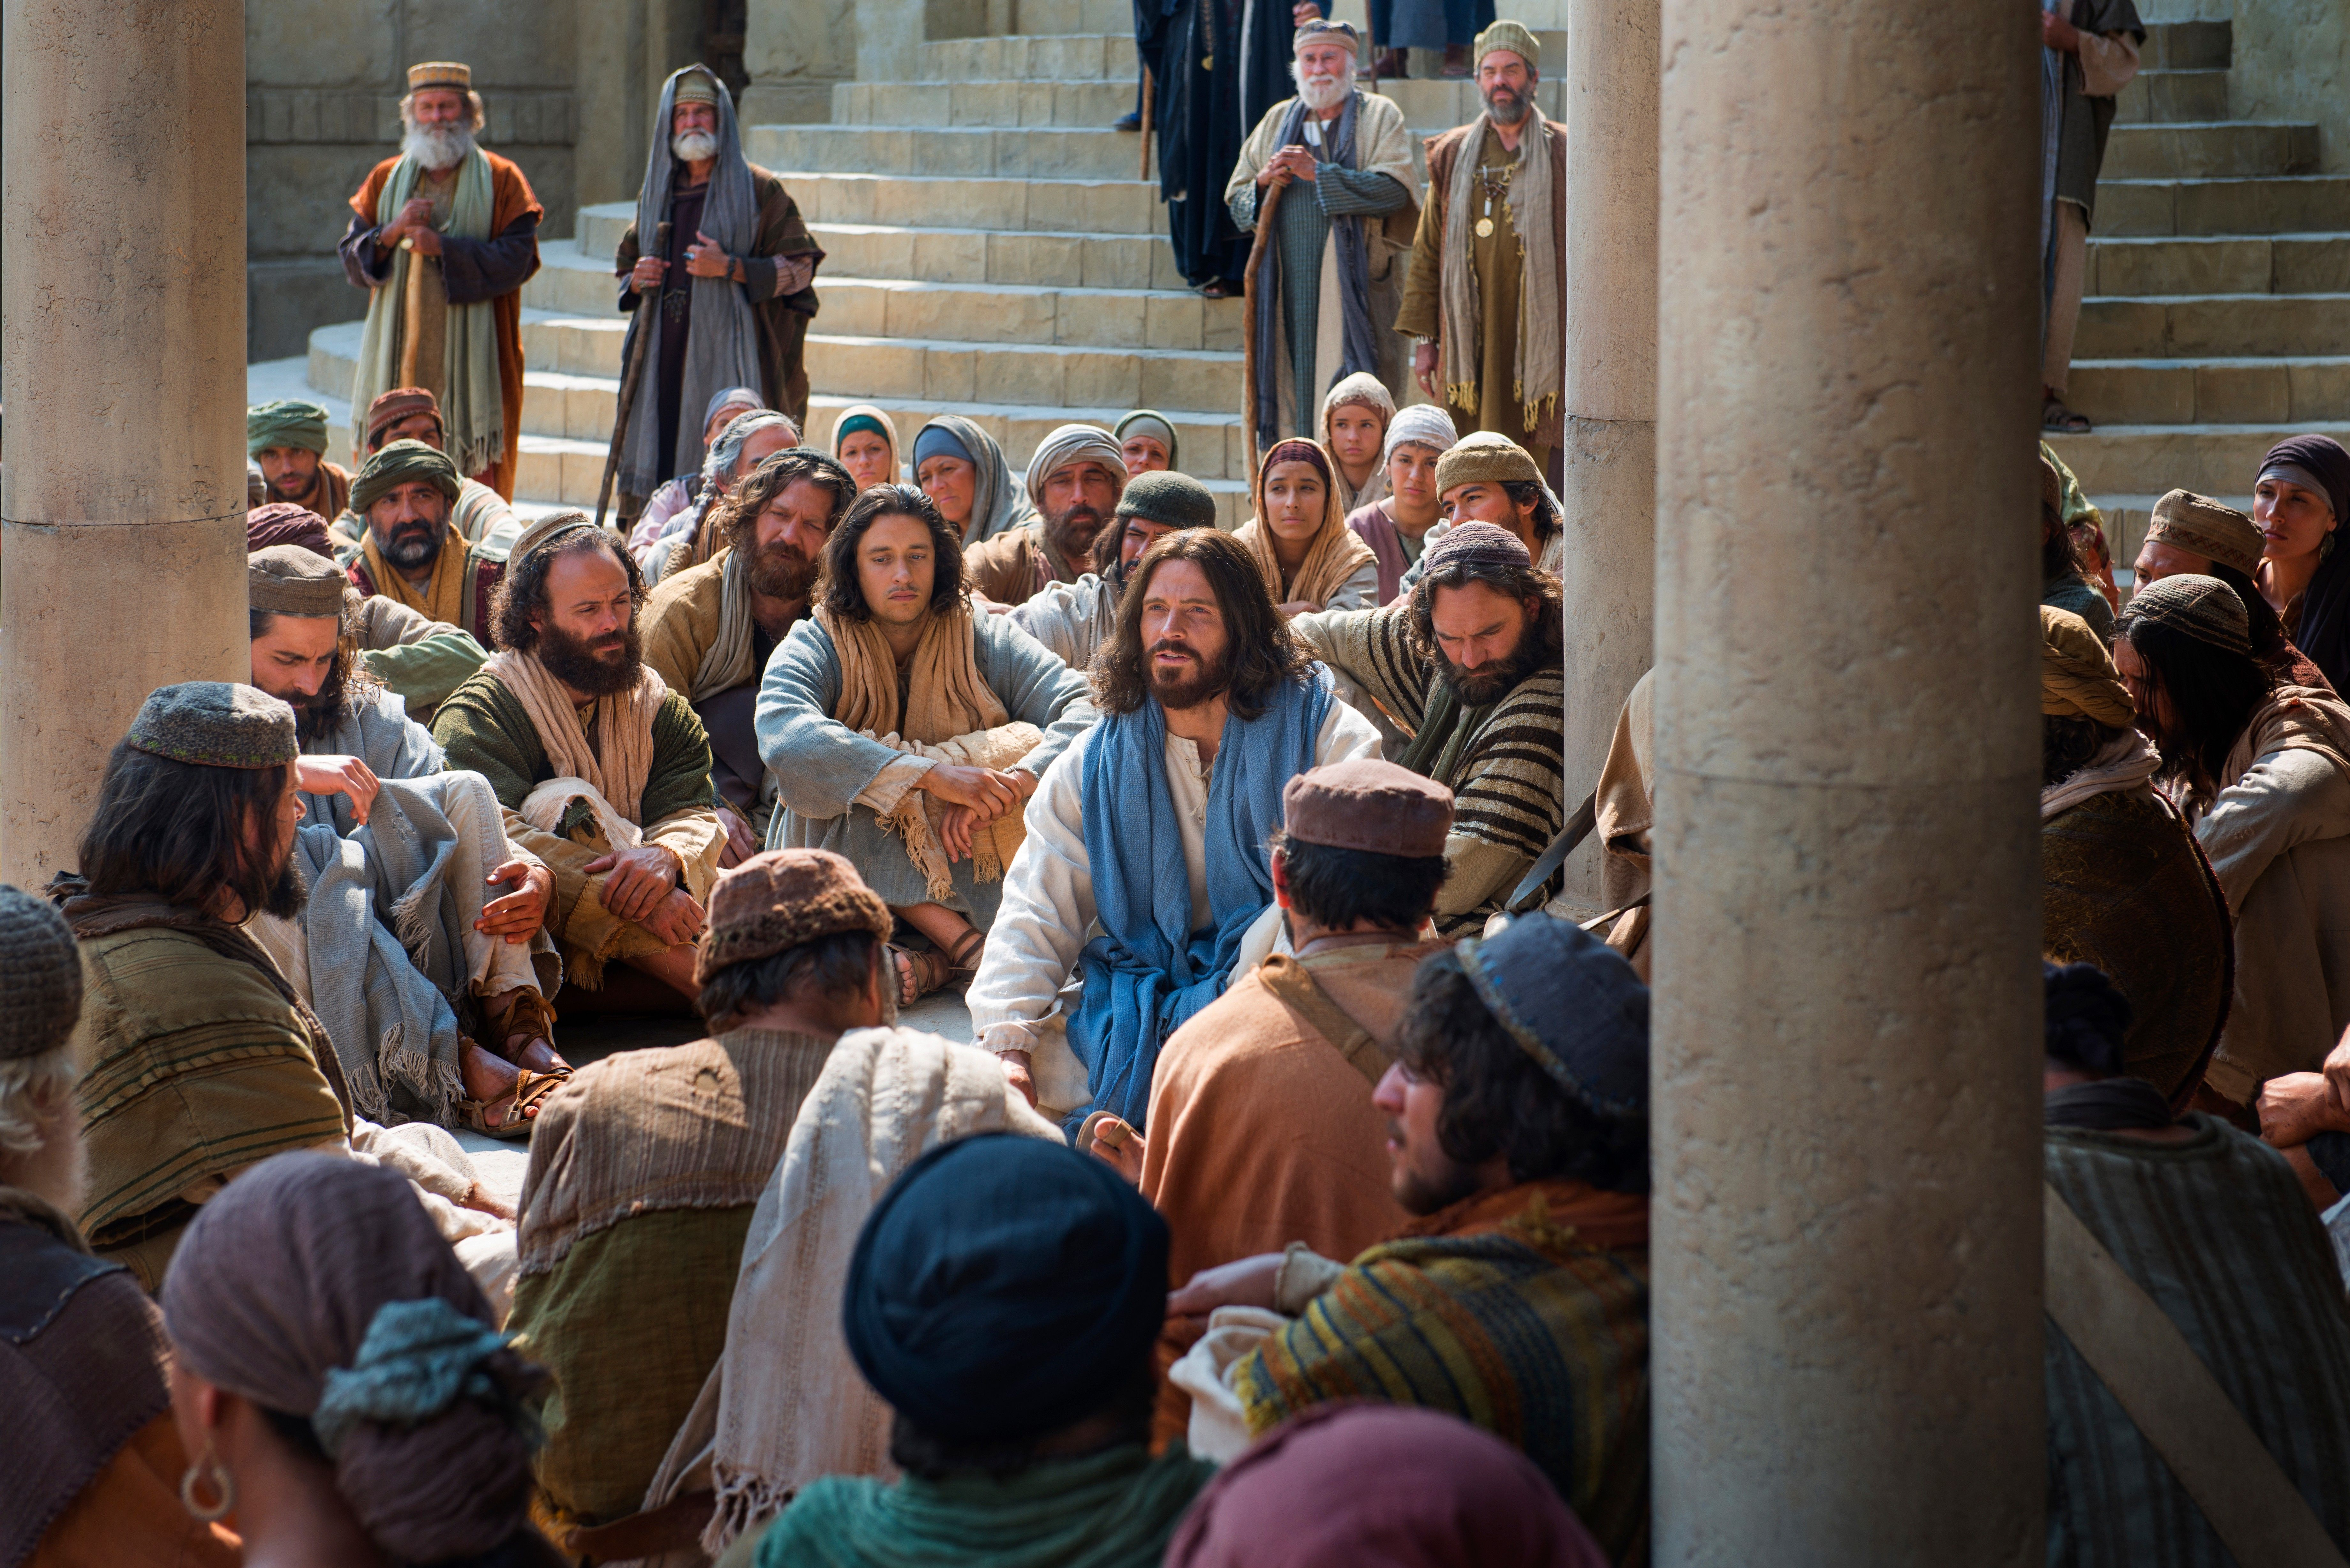 Jesus sits in the midst of a group of people and tells them of the greatest commandment.